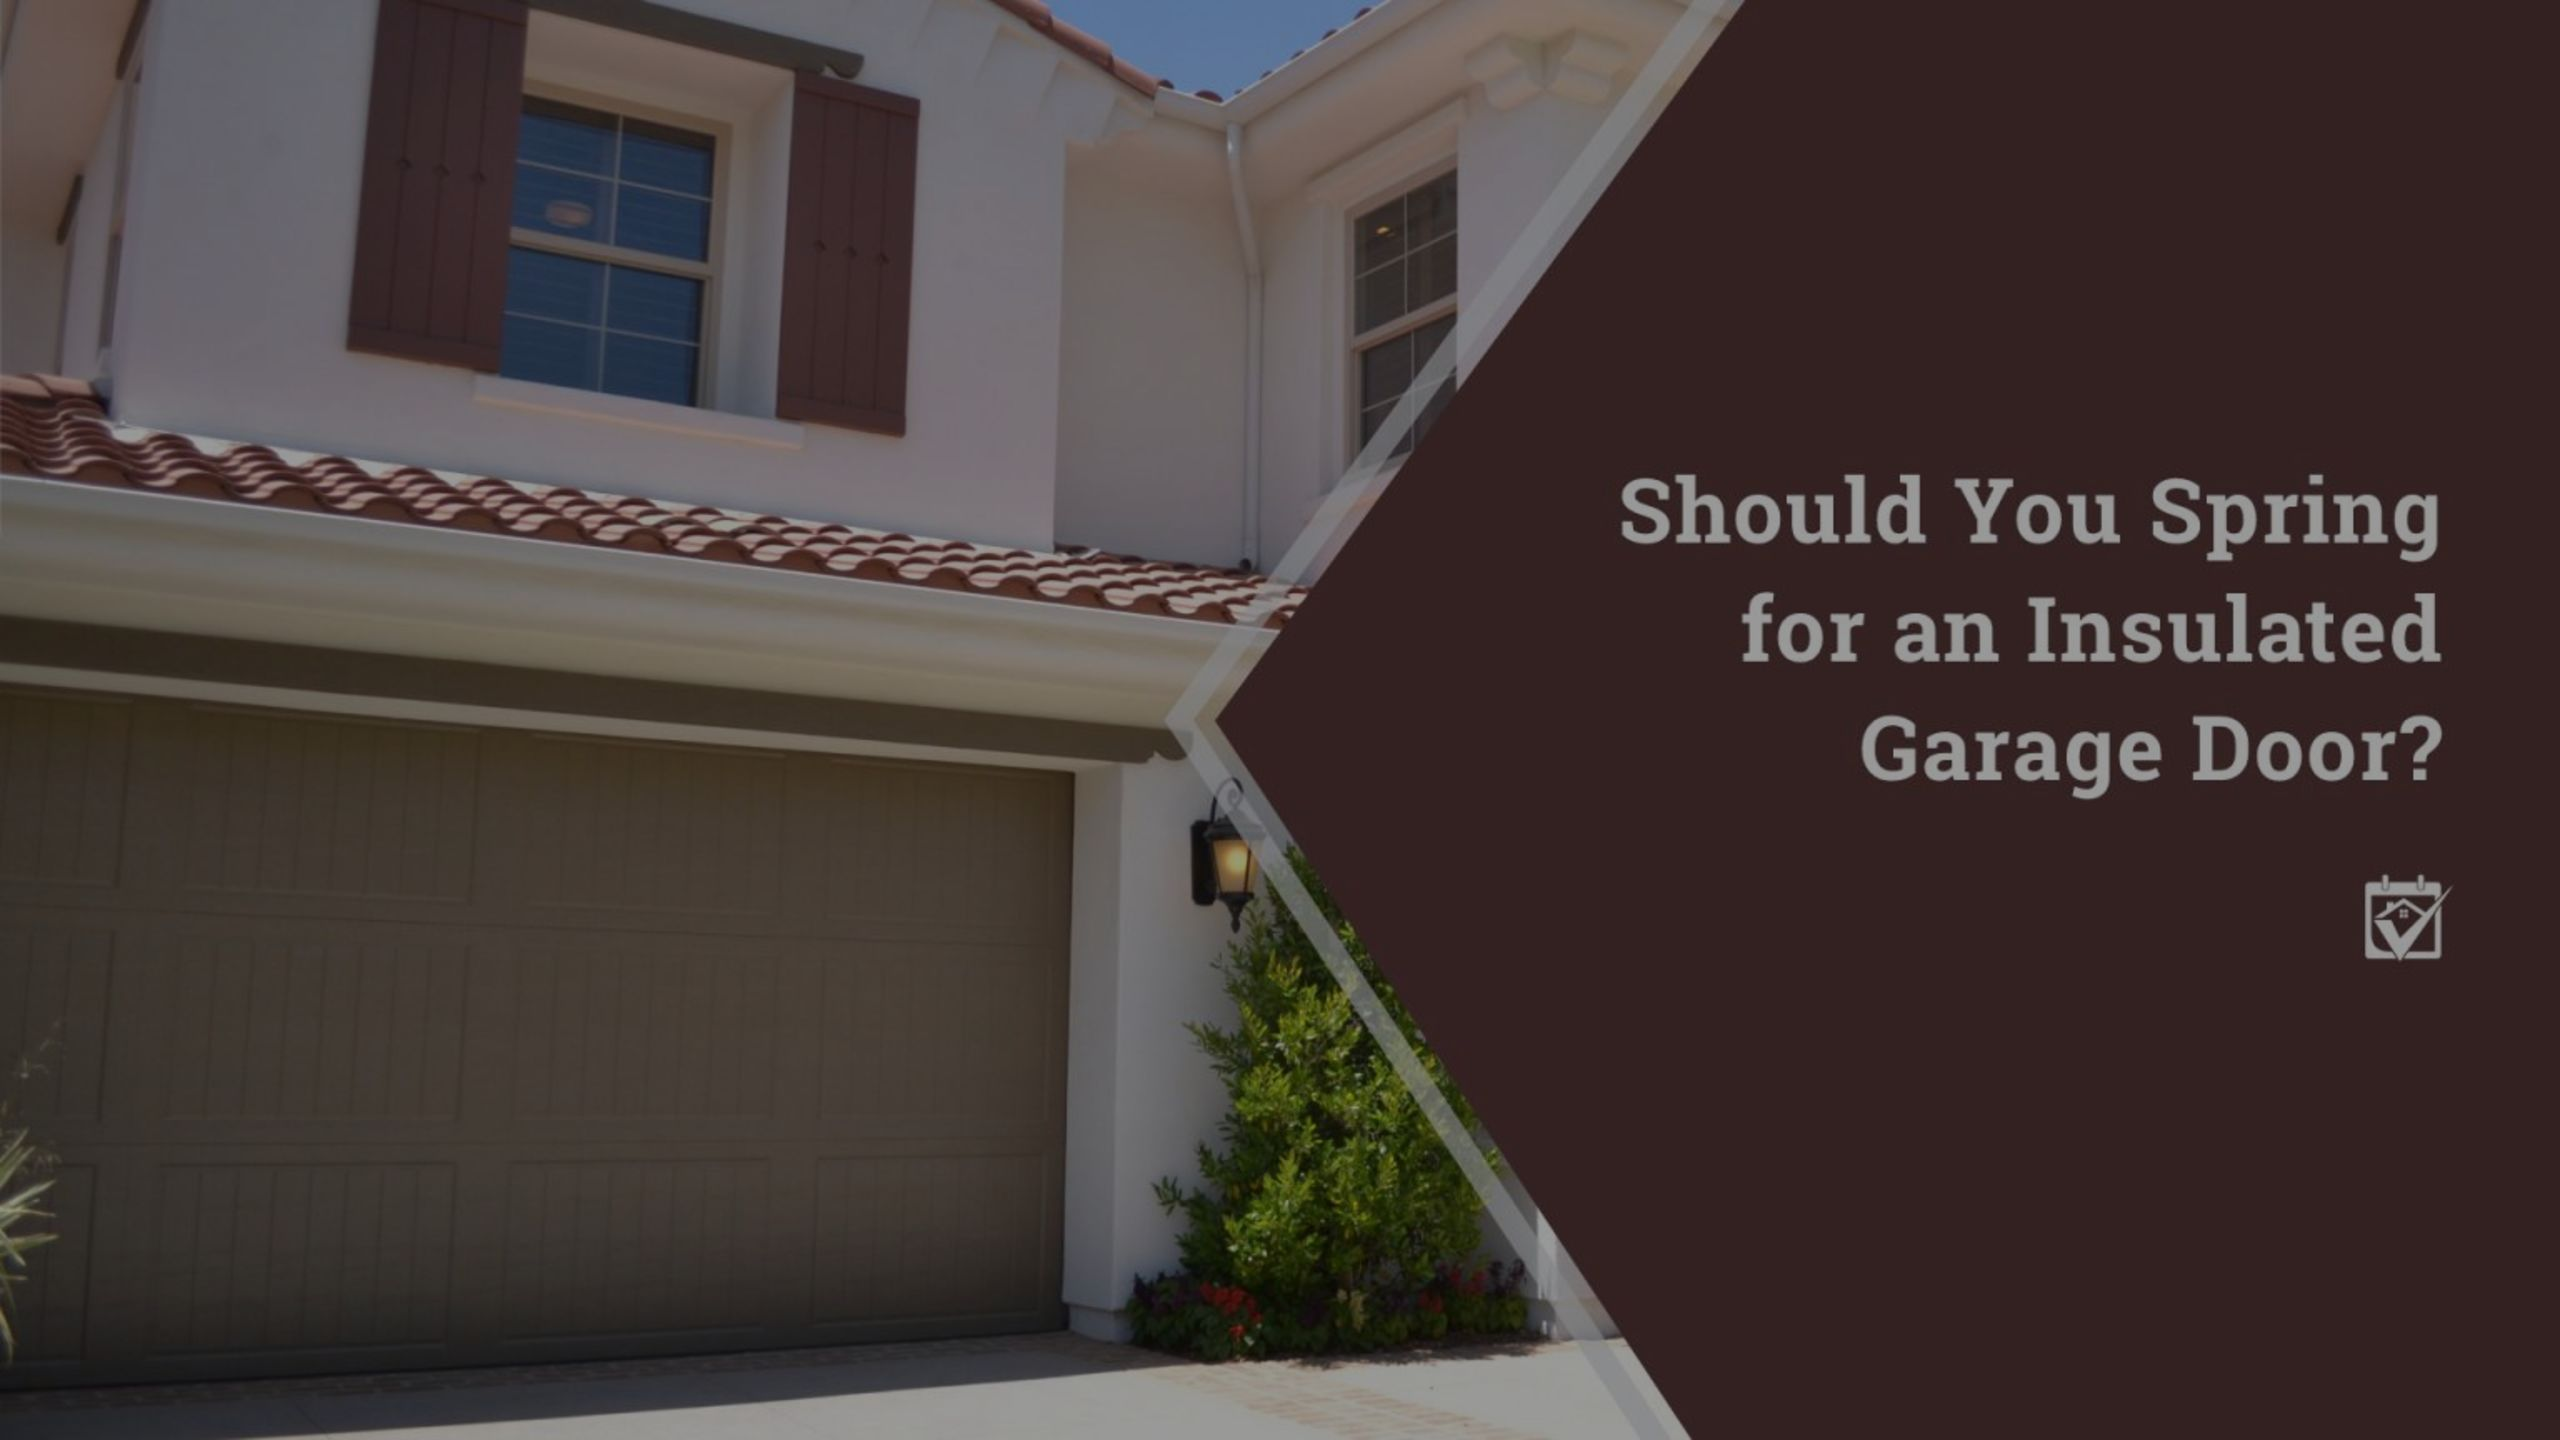 Should You Spring for an Insulated Garage Door?